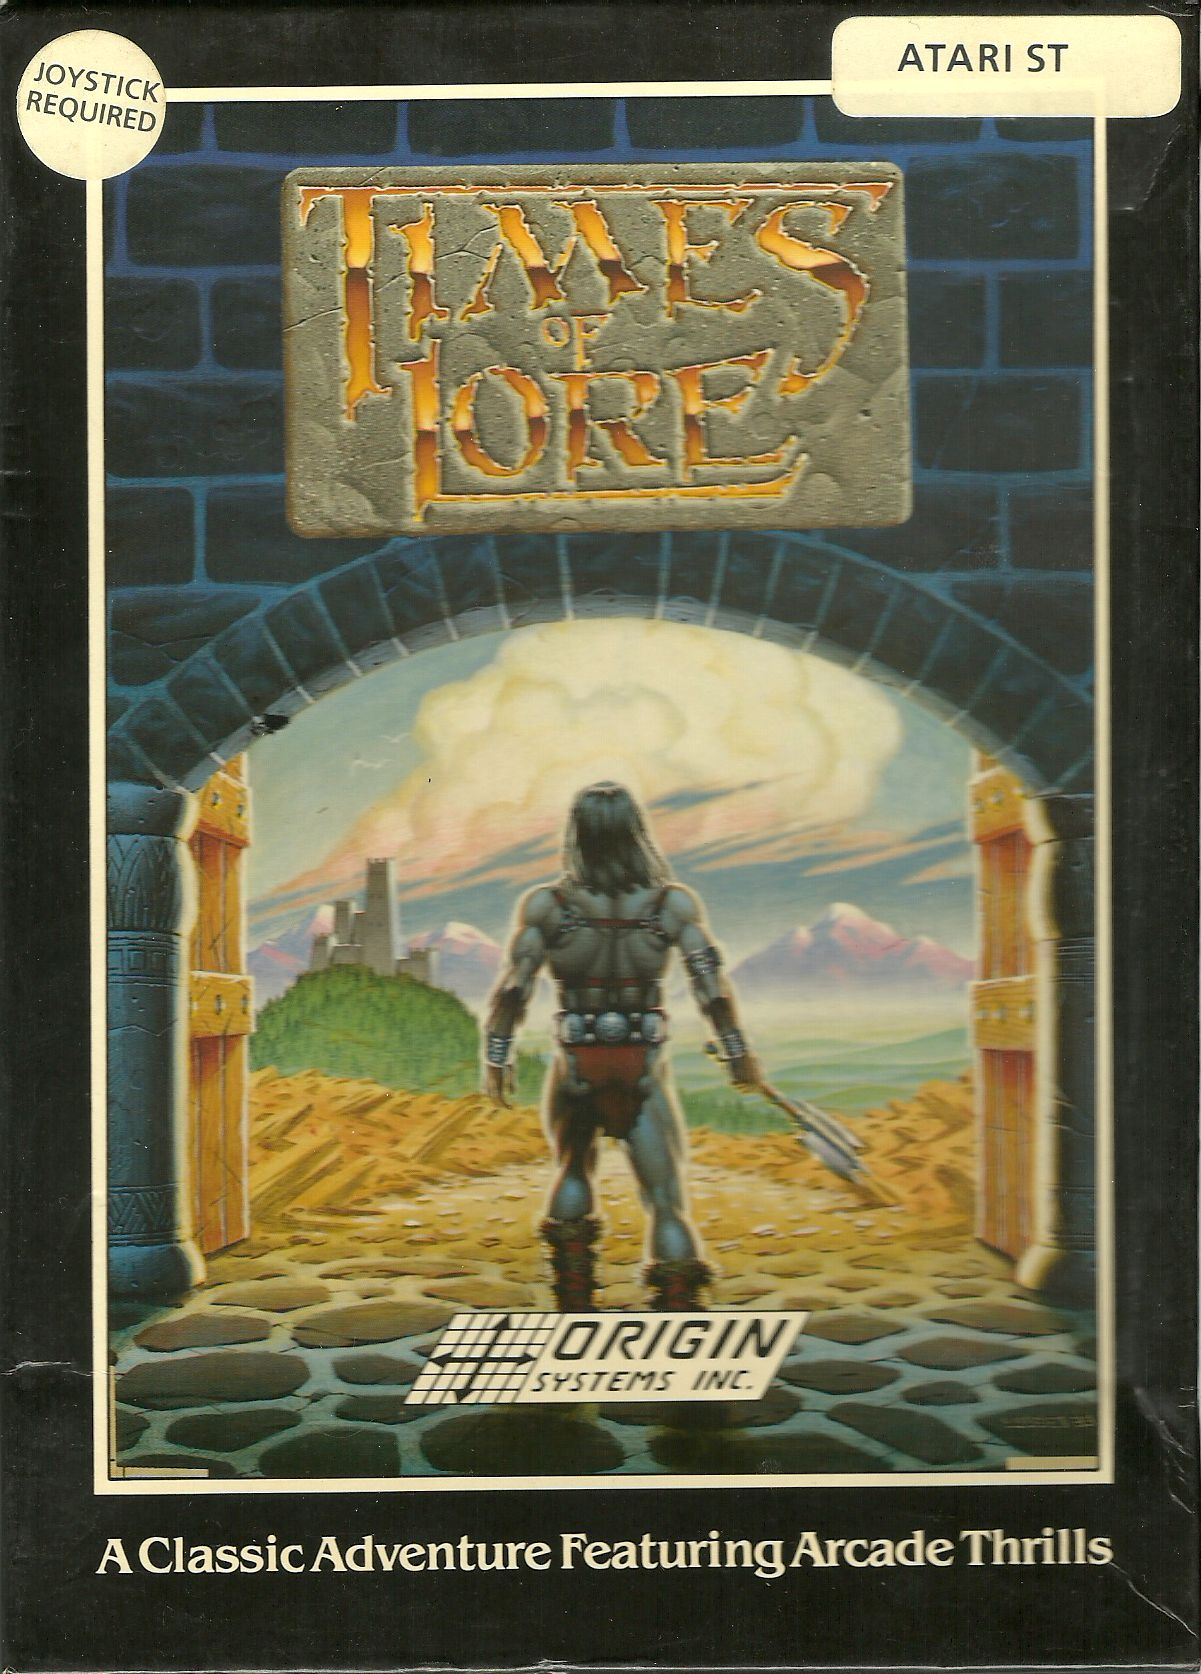 Large scan of the game box